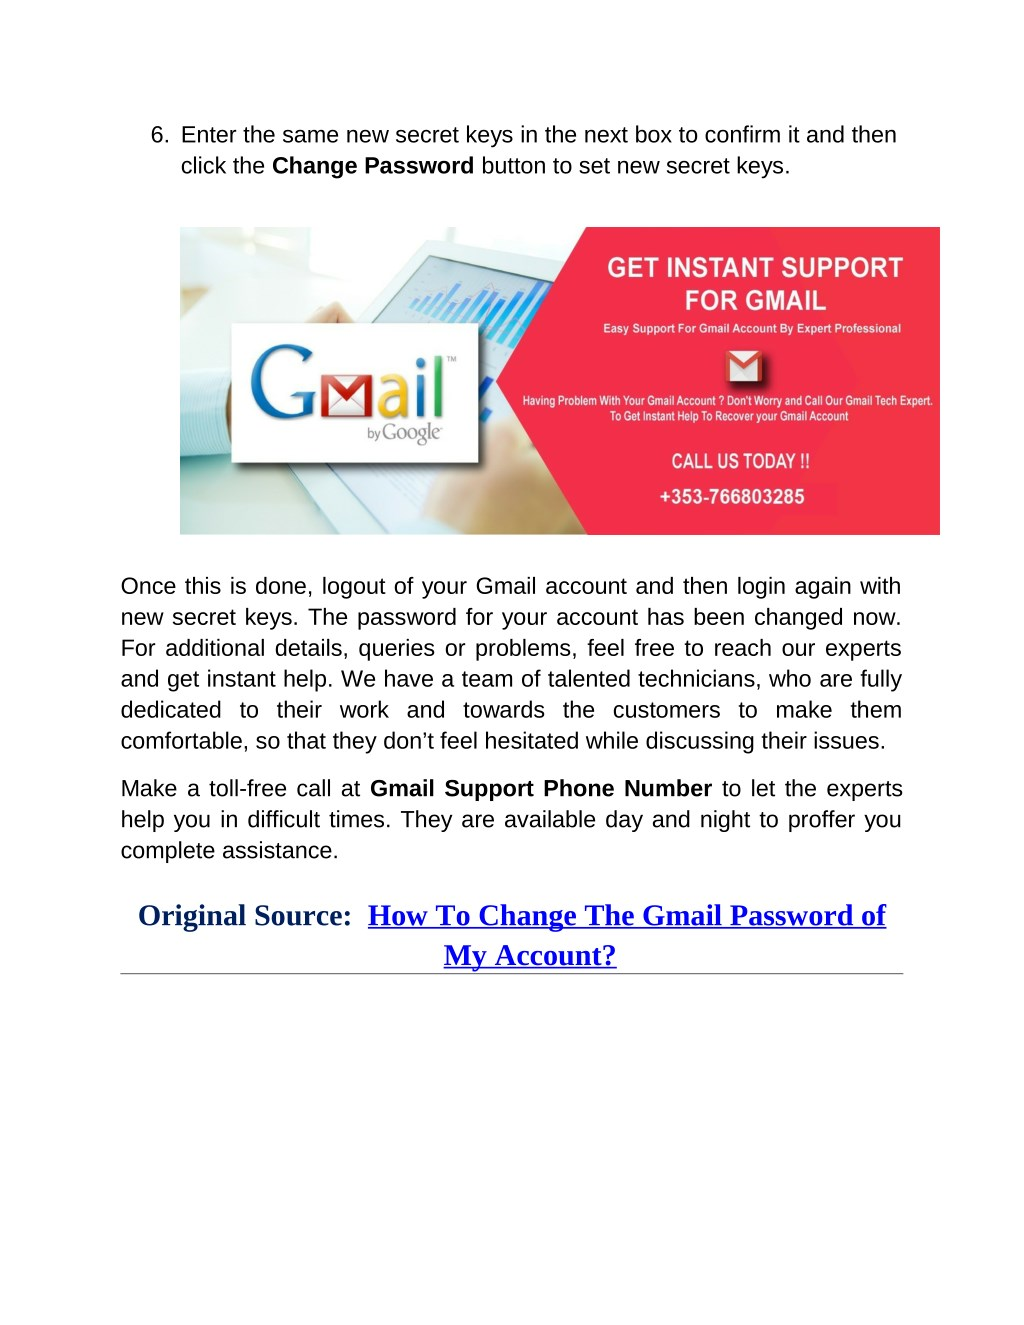 PPT - How To Change The Gmail Password of My Account? PowerPoint